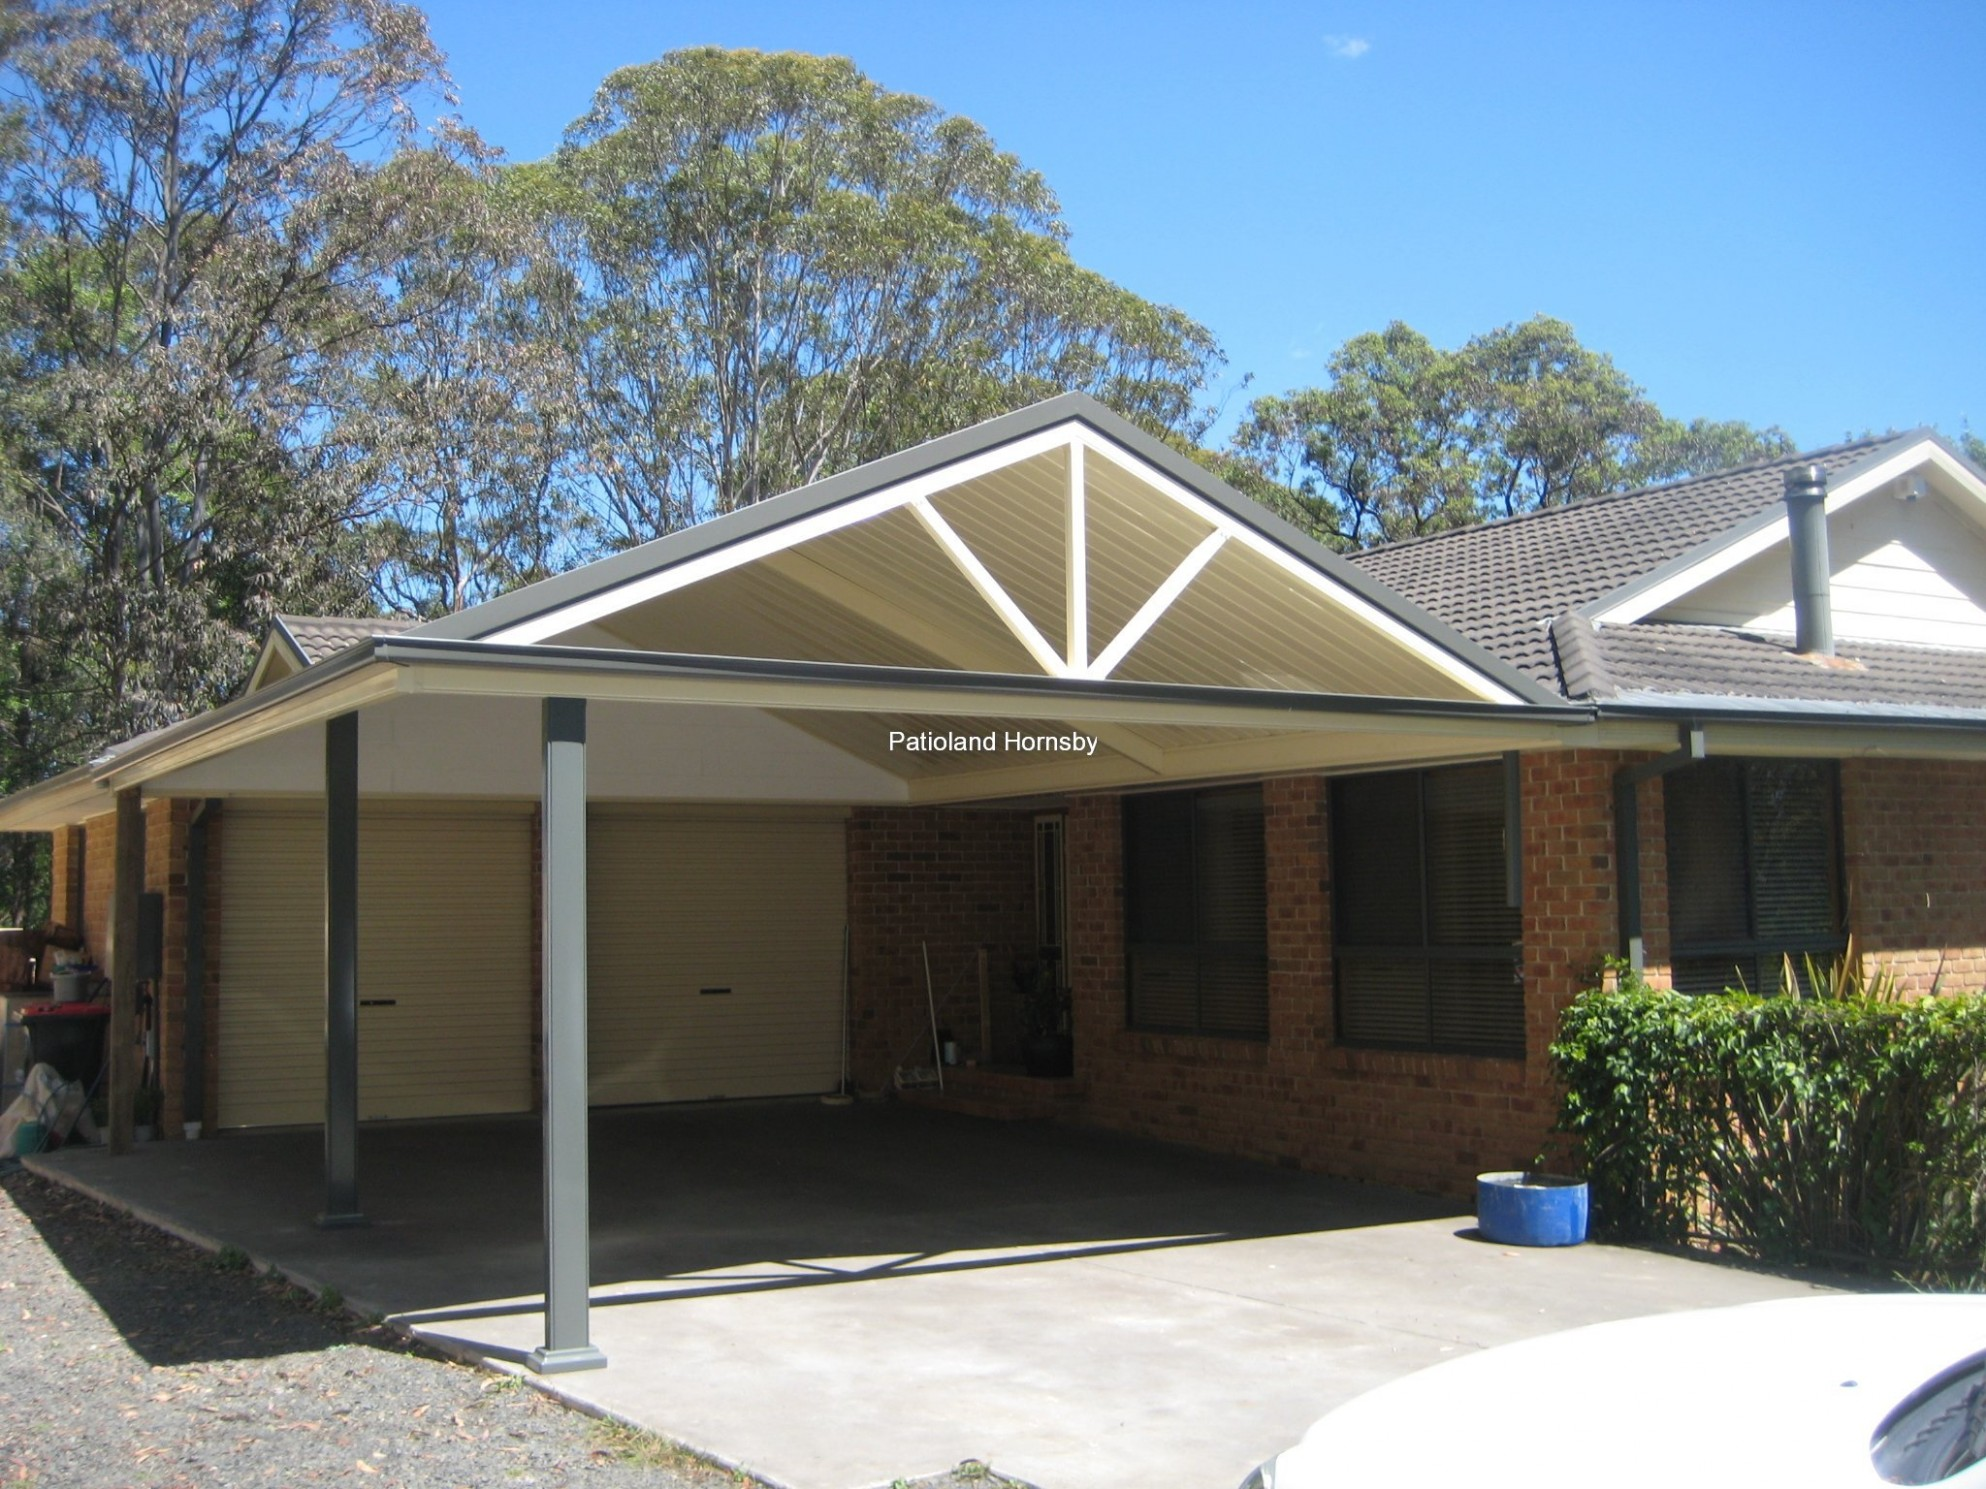 13 Things To Avoid In Carport Builders | carport builders